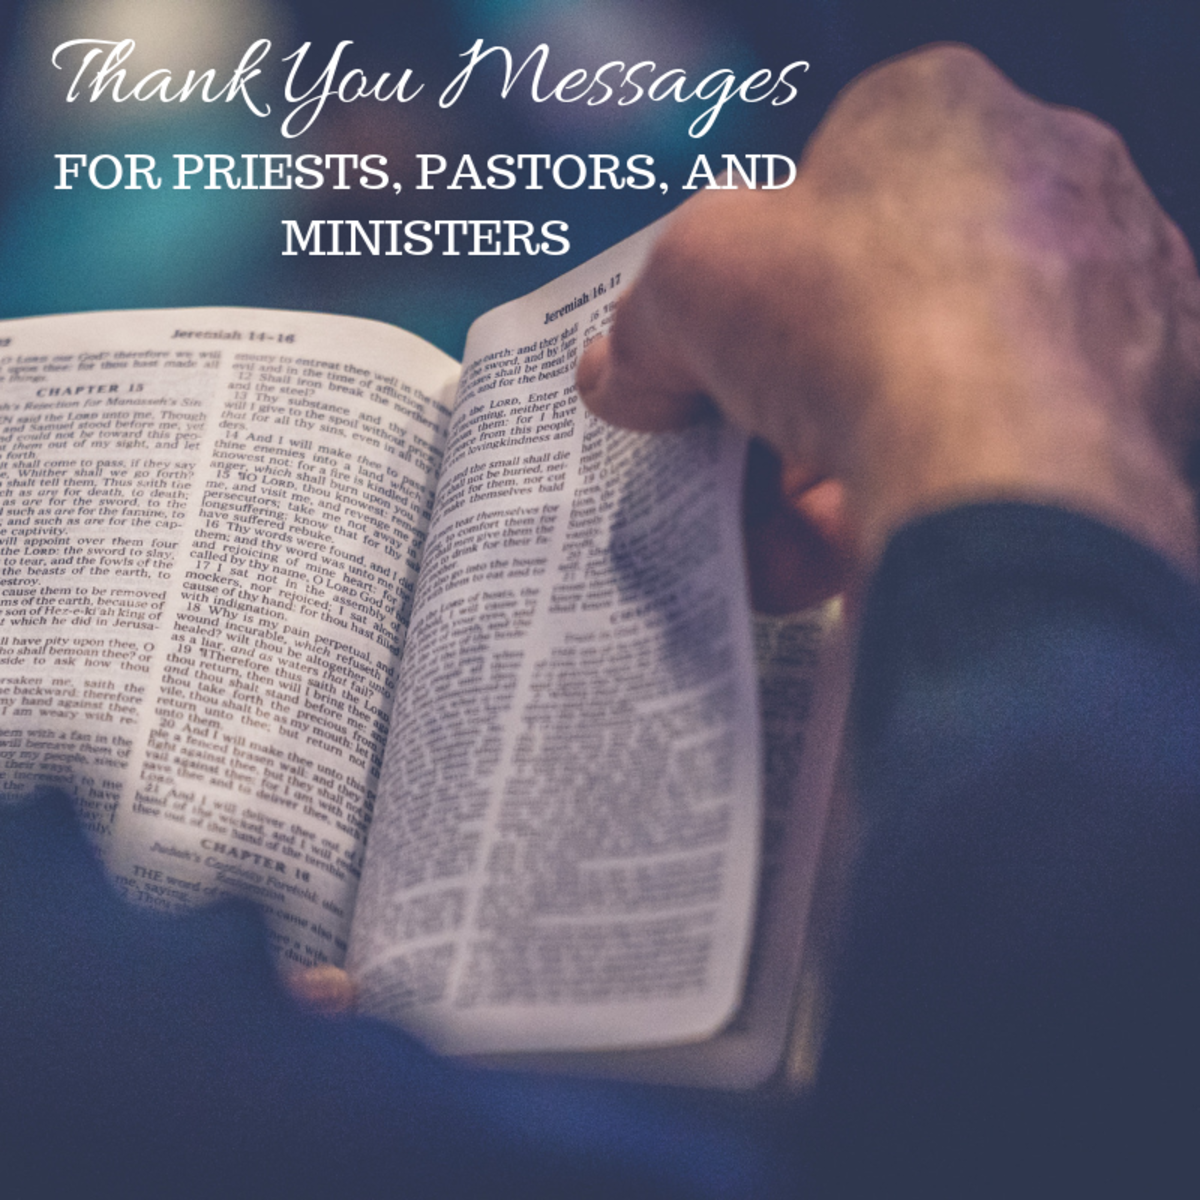 Our pastors and priests help us in ways others can't—let's thank them for the lasting impacts they've made in our lives.